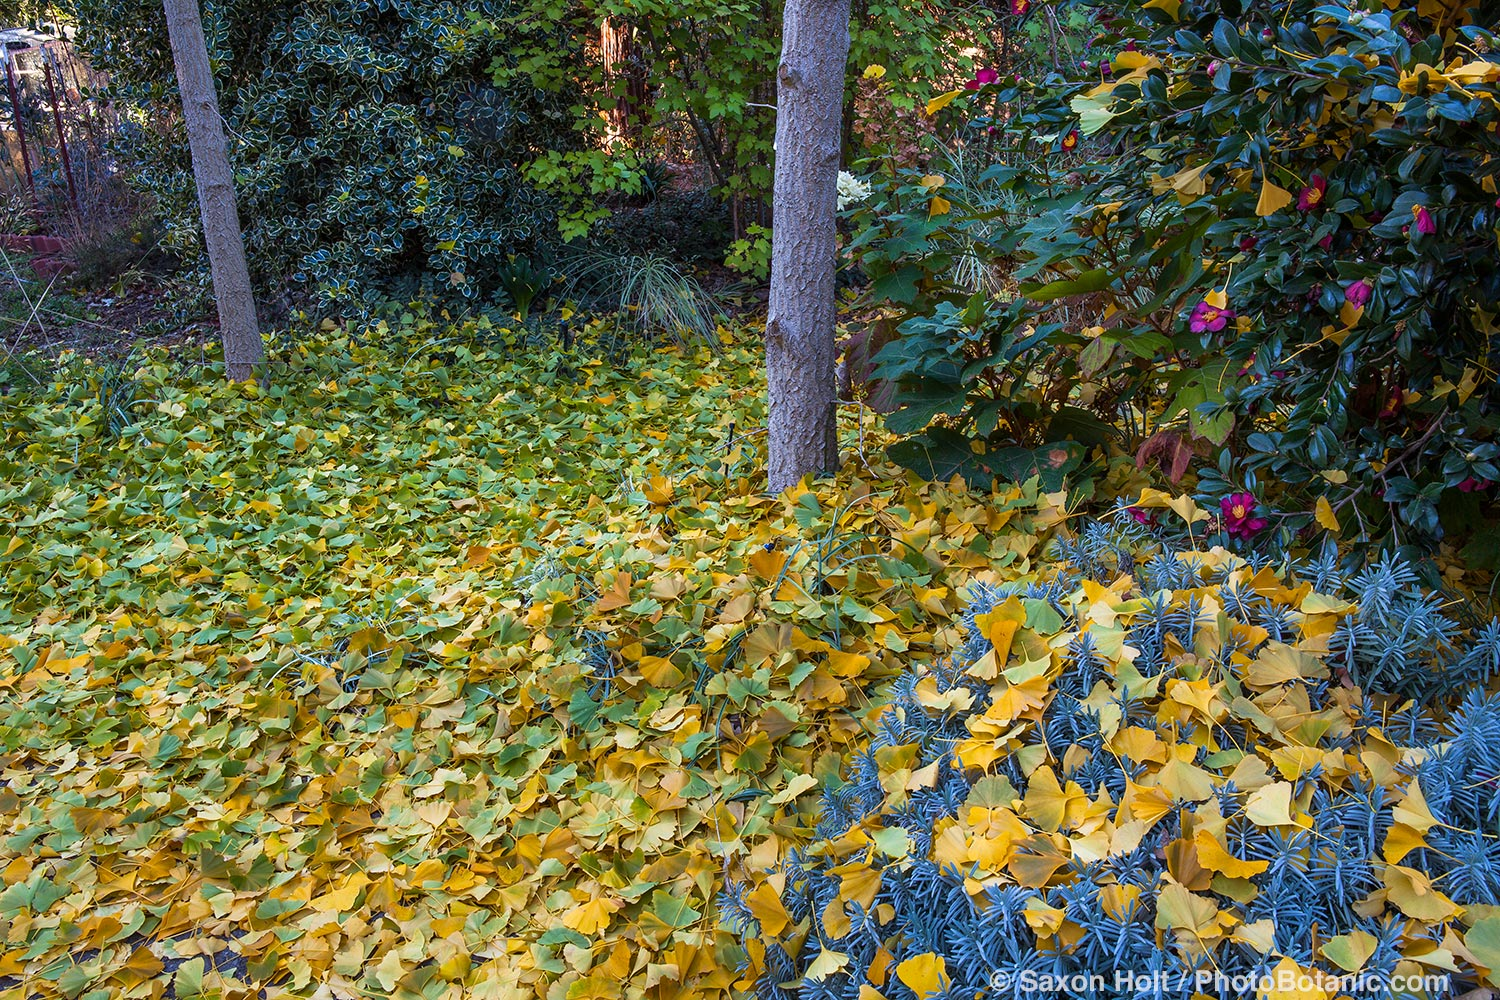 Ginkgo biloba tree leaves covering ground after autumn frost.